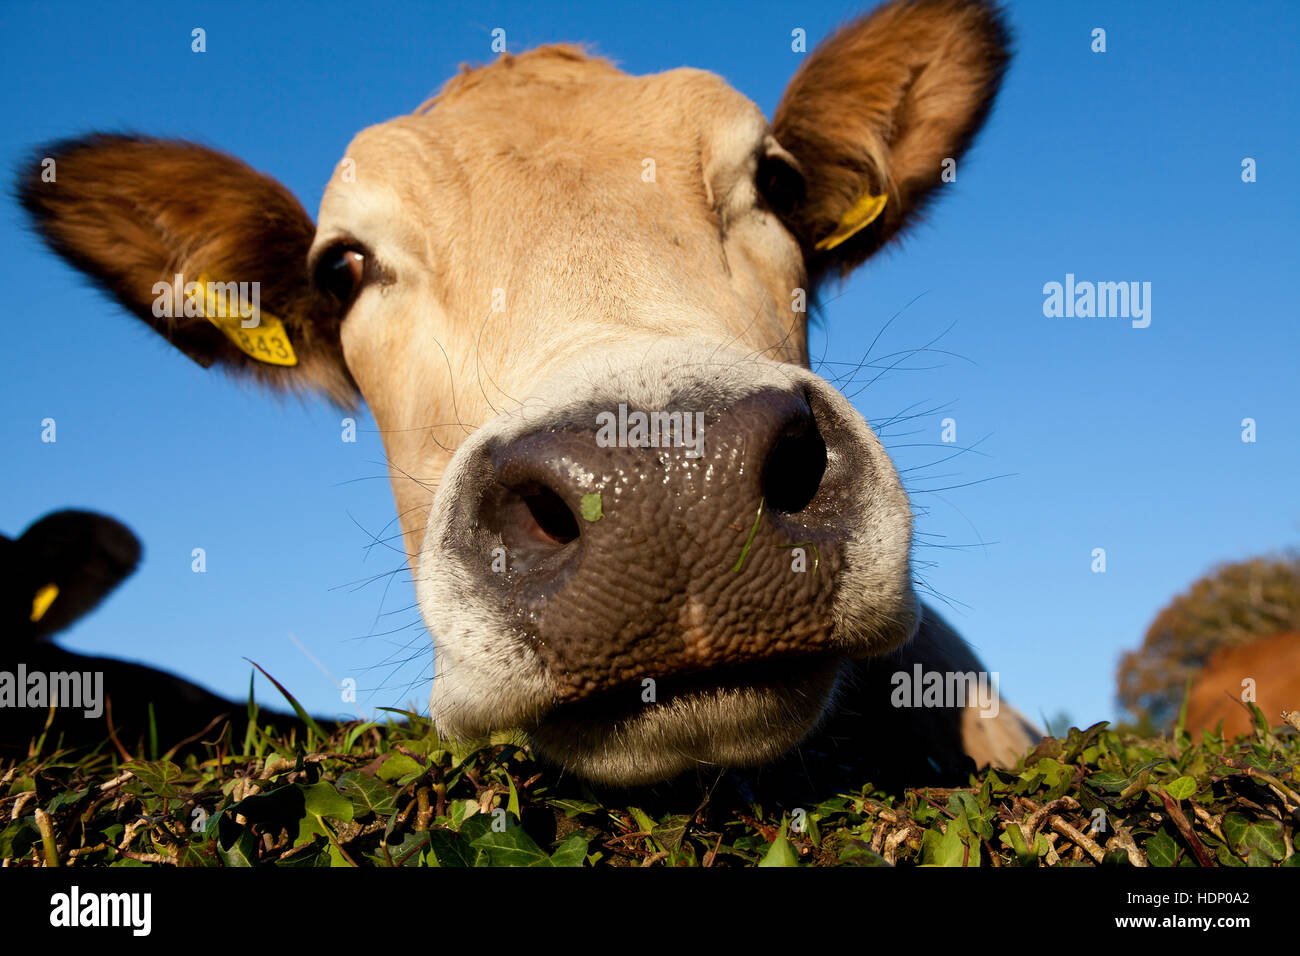 Europe, Germany, North Rhine-Westphalia, Herdecke, cow is looking over an ivy covered wall. Stock Photo